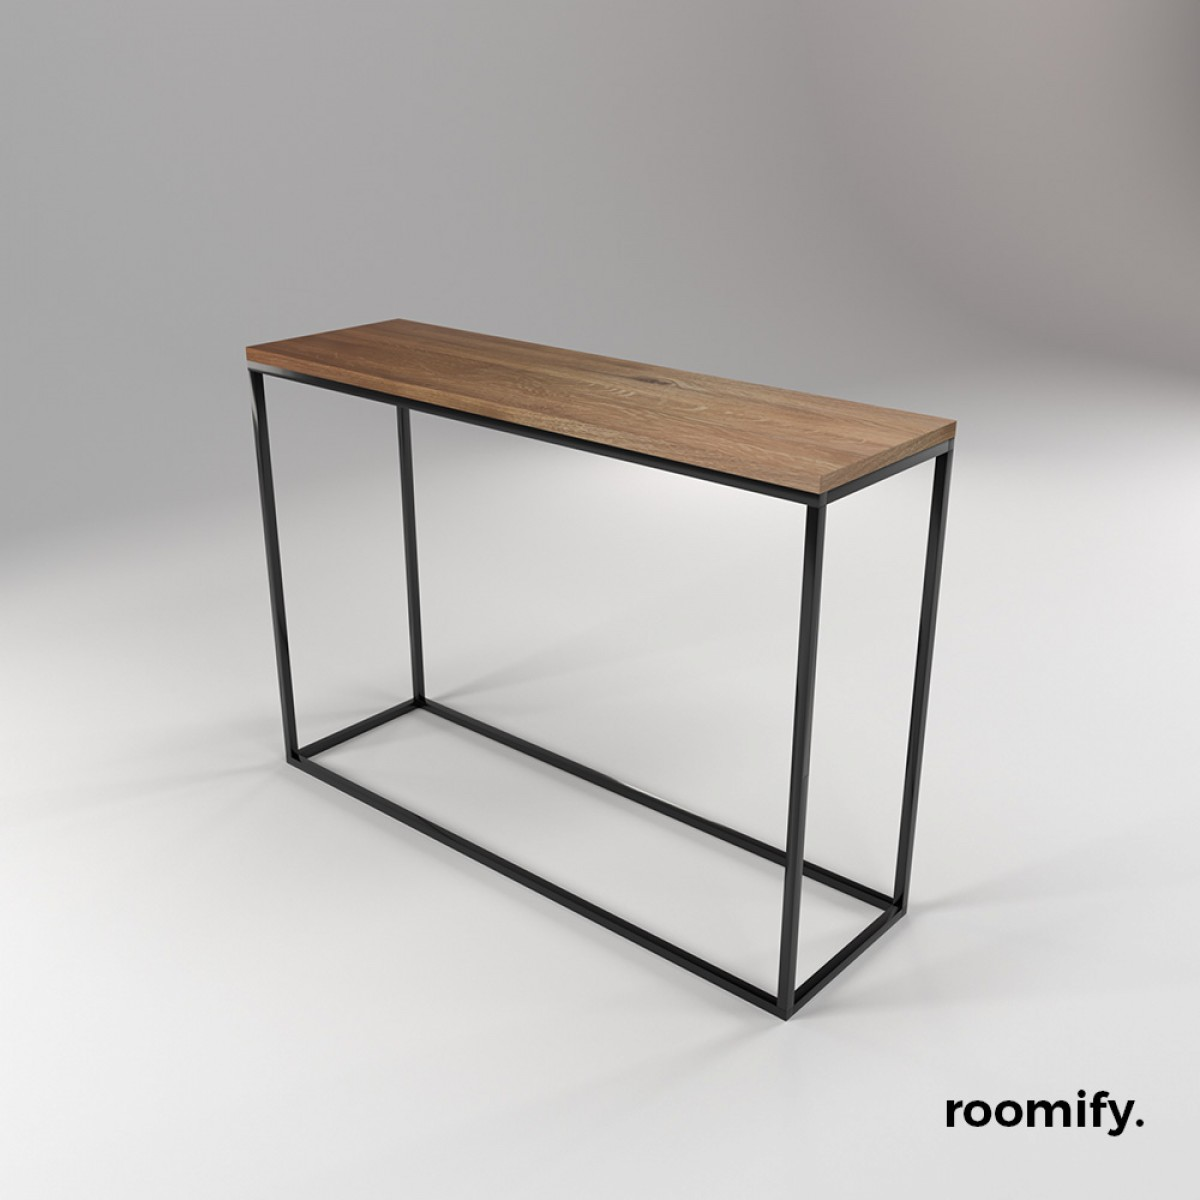 roomify konsole konsolentisch linnea black. Black Bedroom Furniture Sets. Home Design Ideas